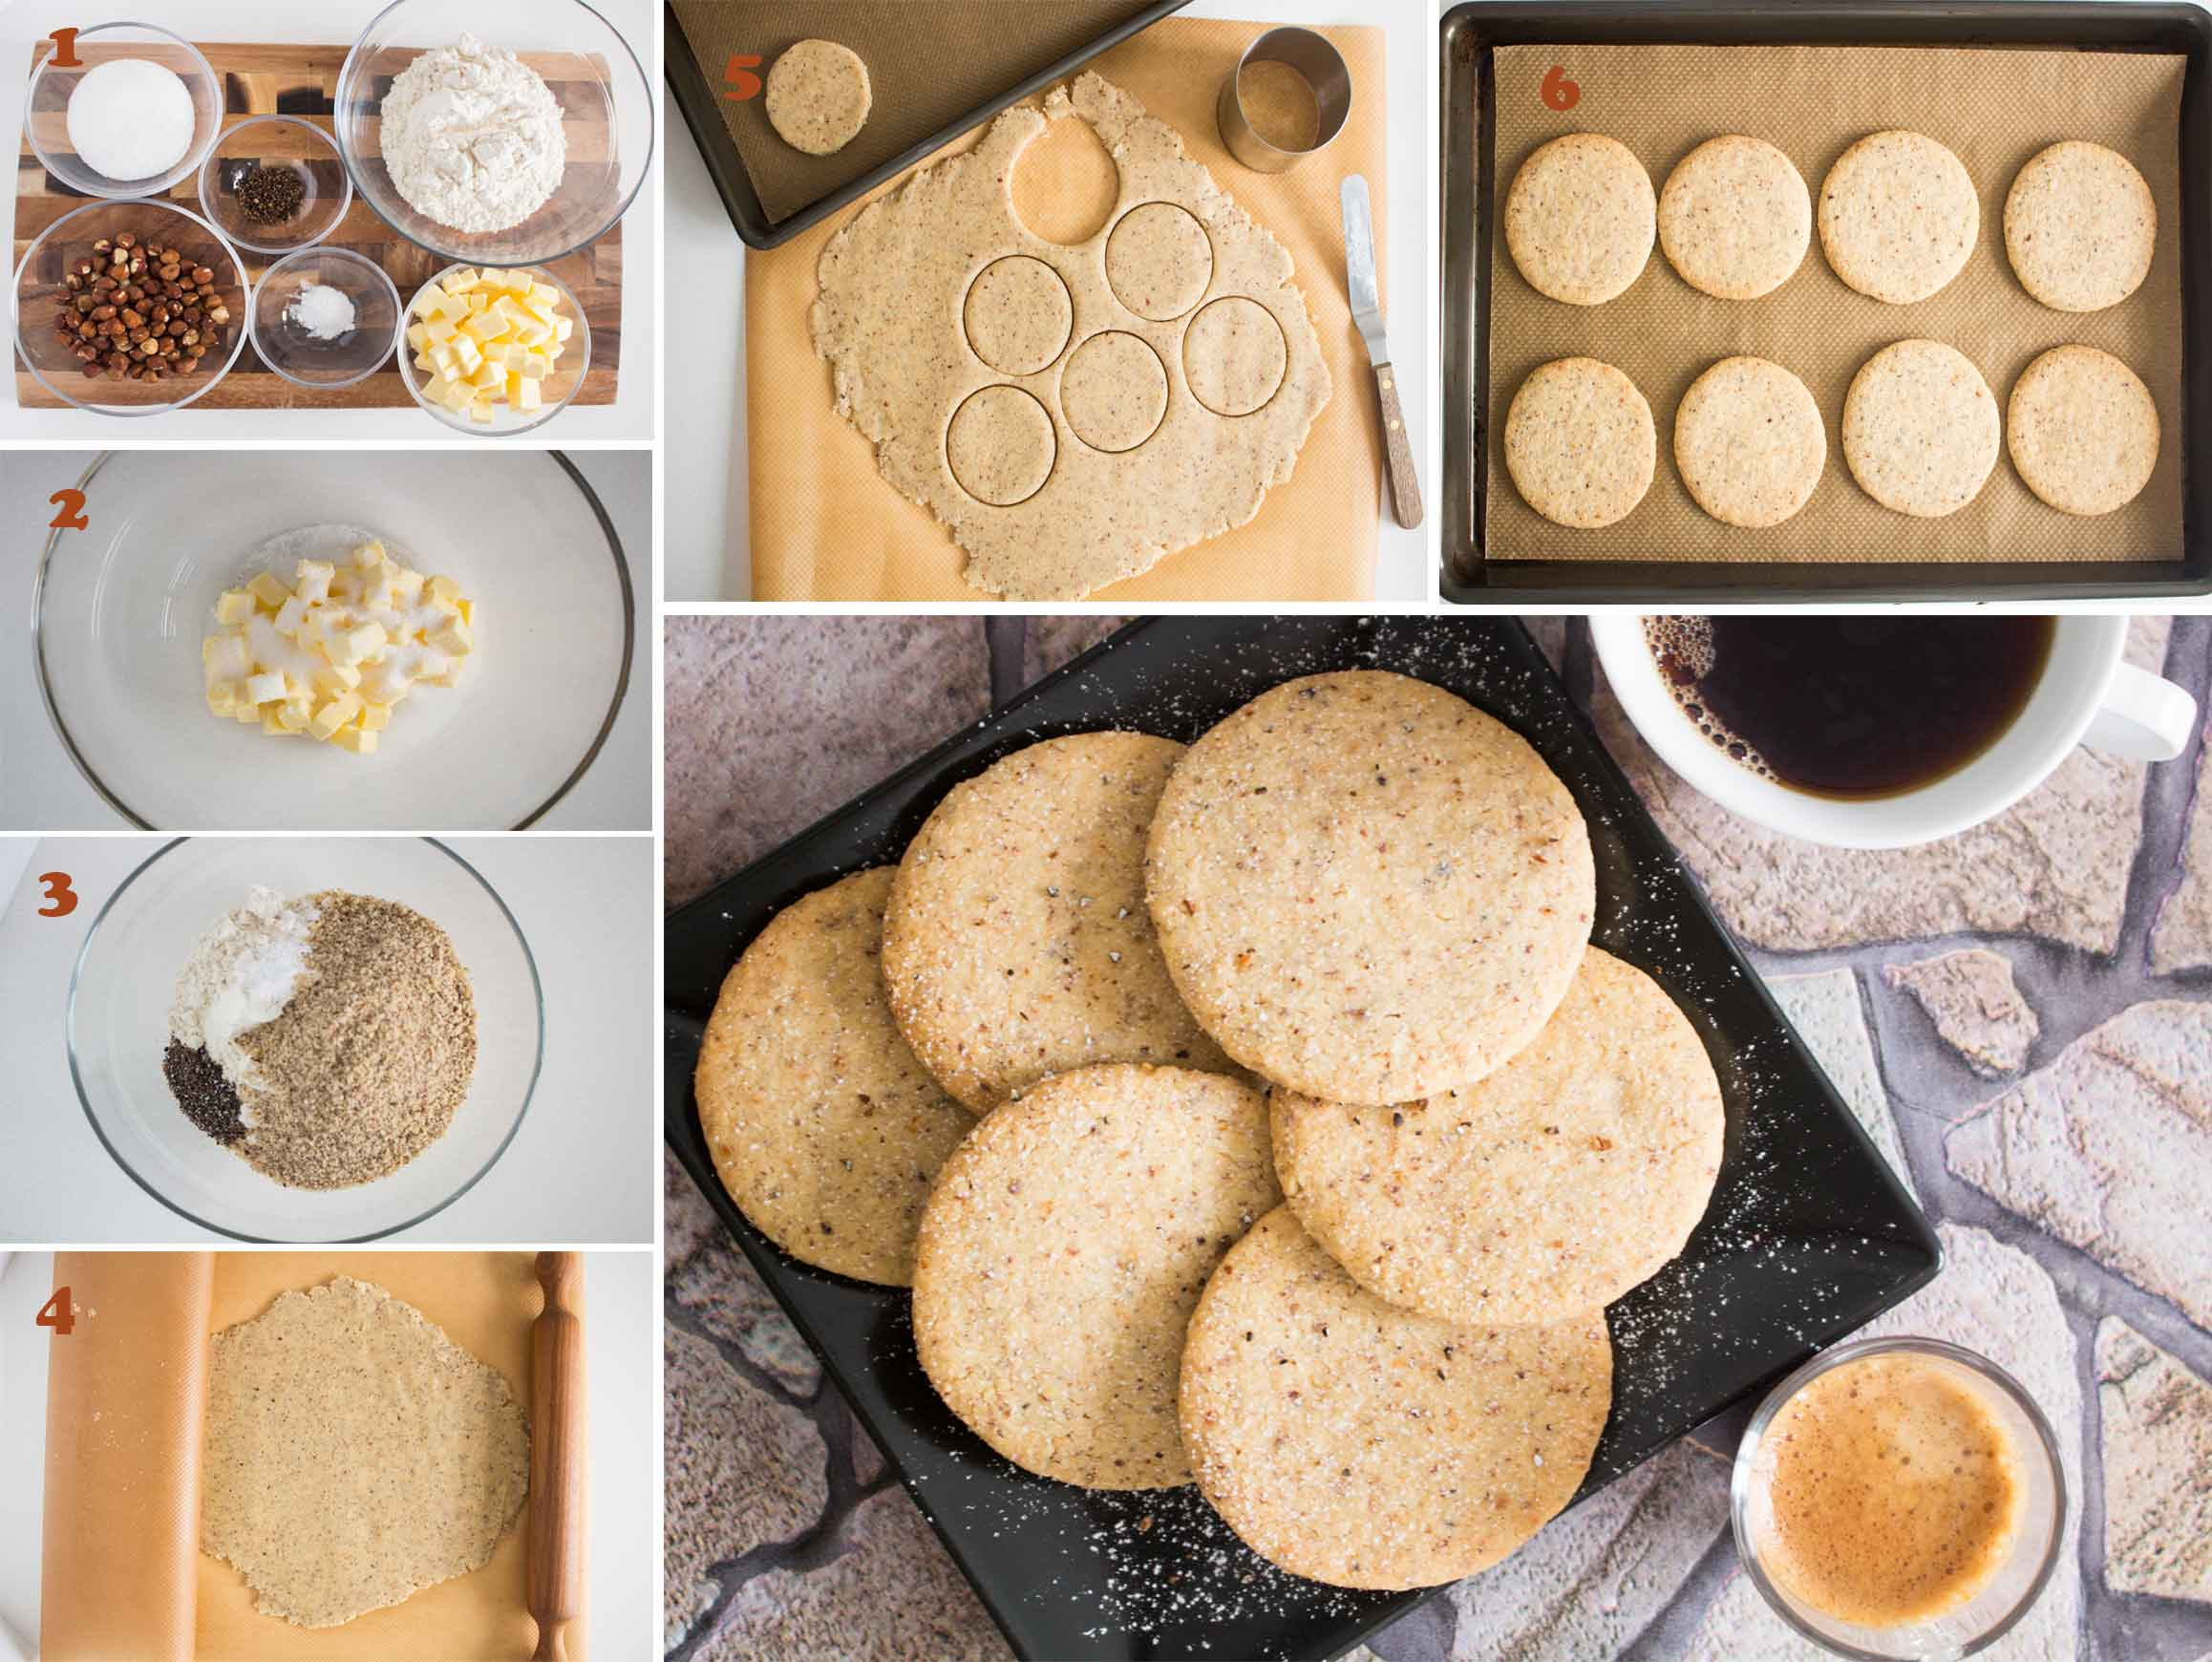 Collection of mages showing the steps on how to make Swedish Hazelnut & Cardamom Cookies